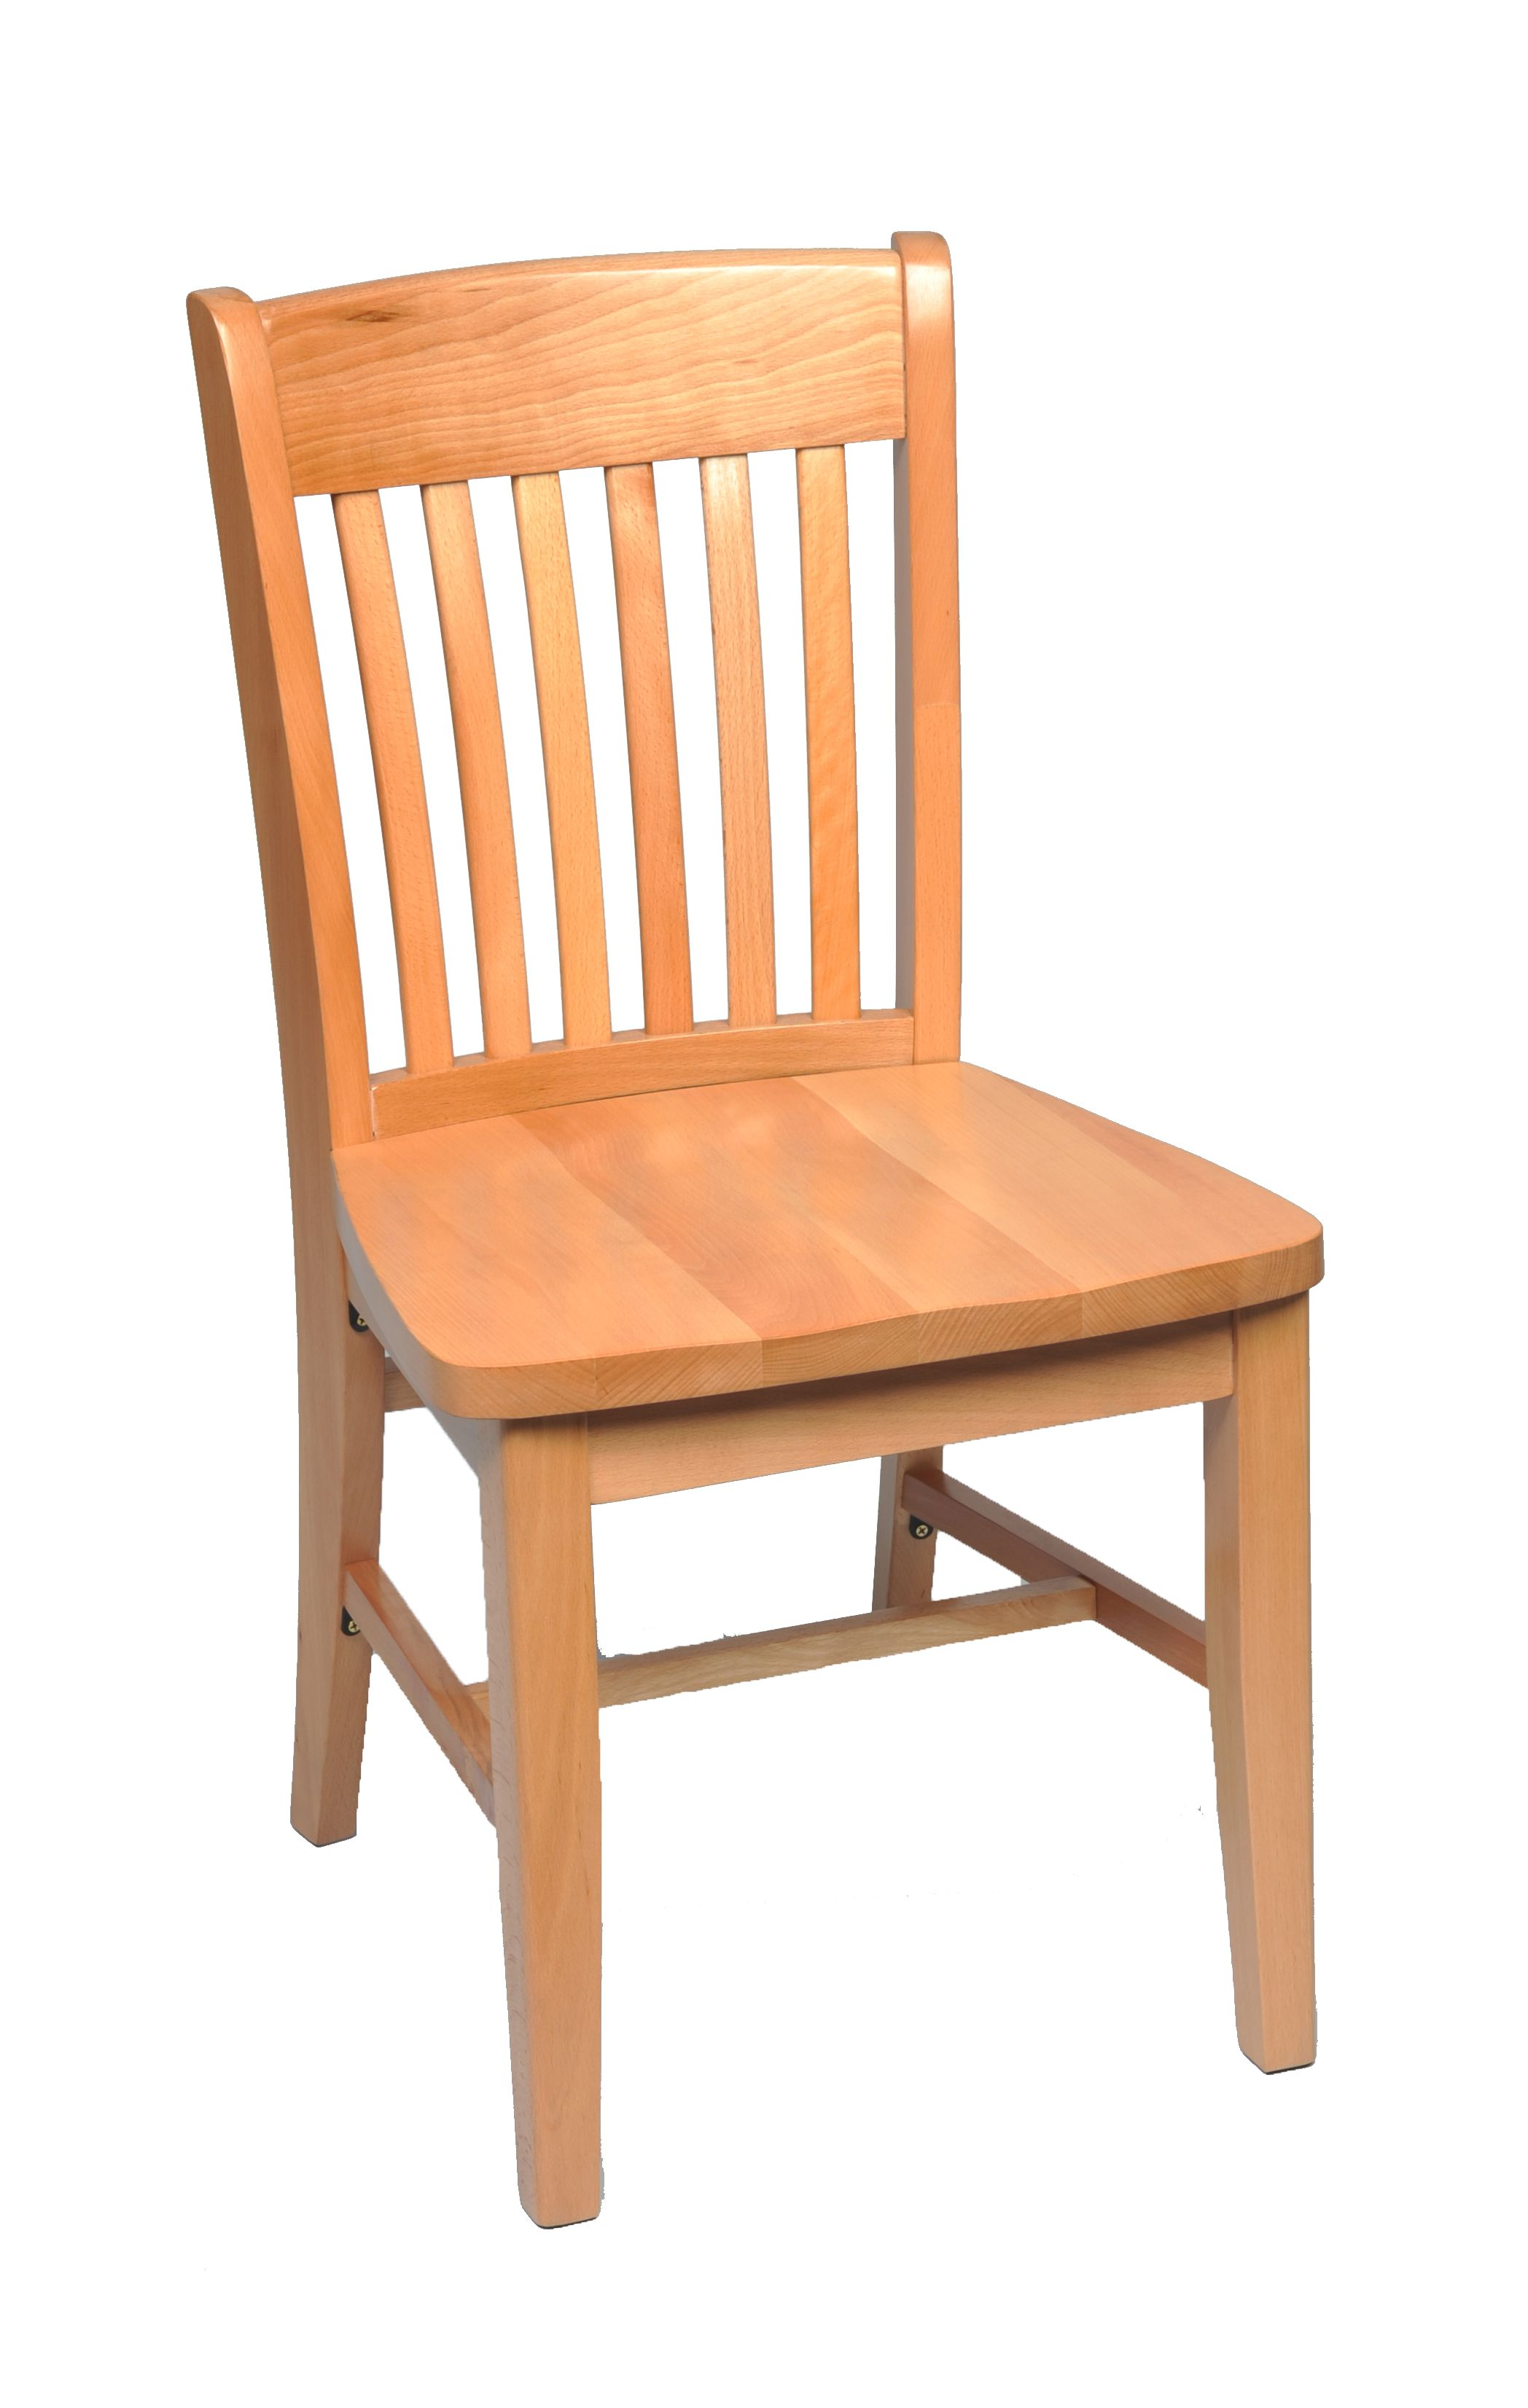 Solid wood dining chair schoolhouse solid wood dining for Oak dining chairs